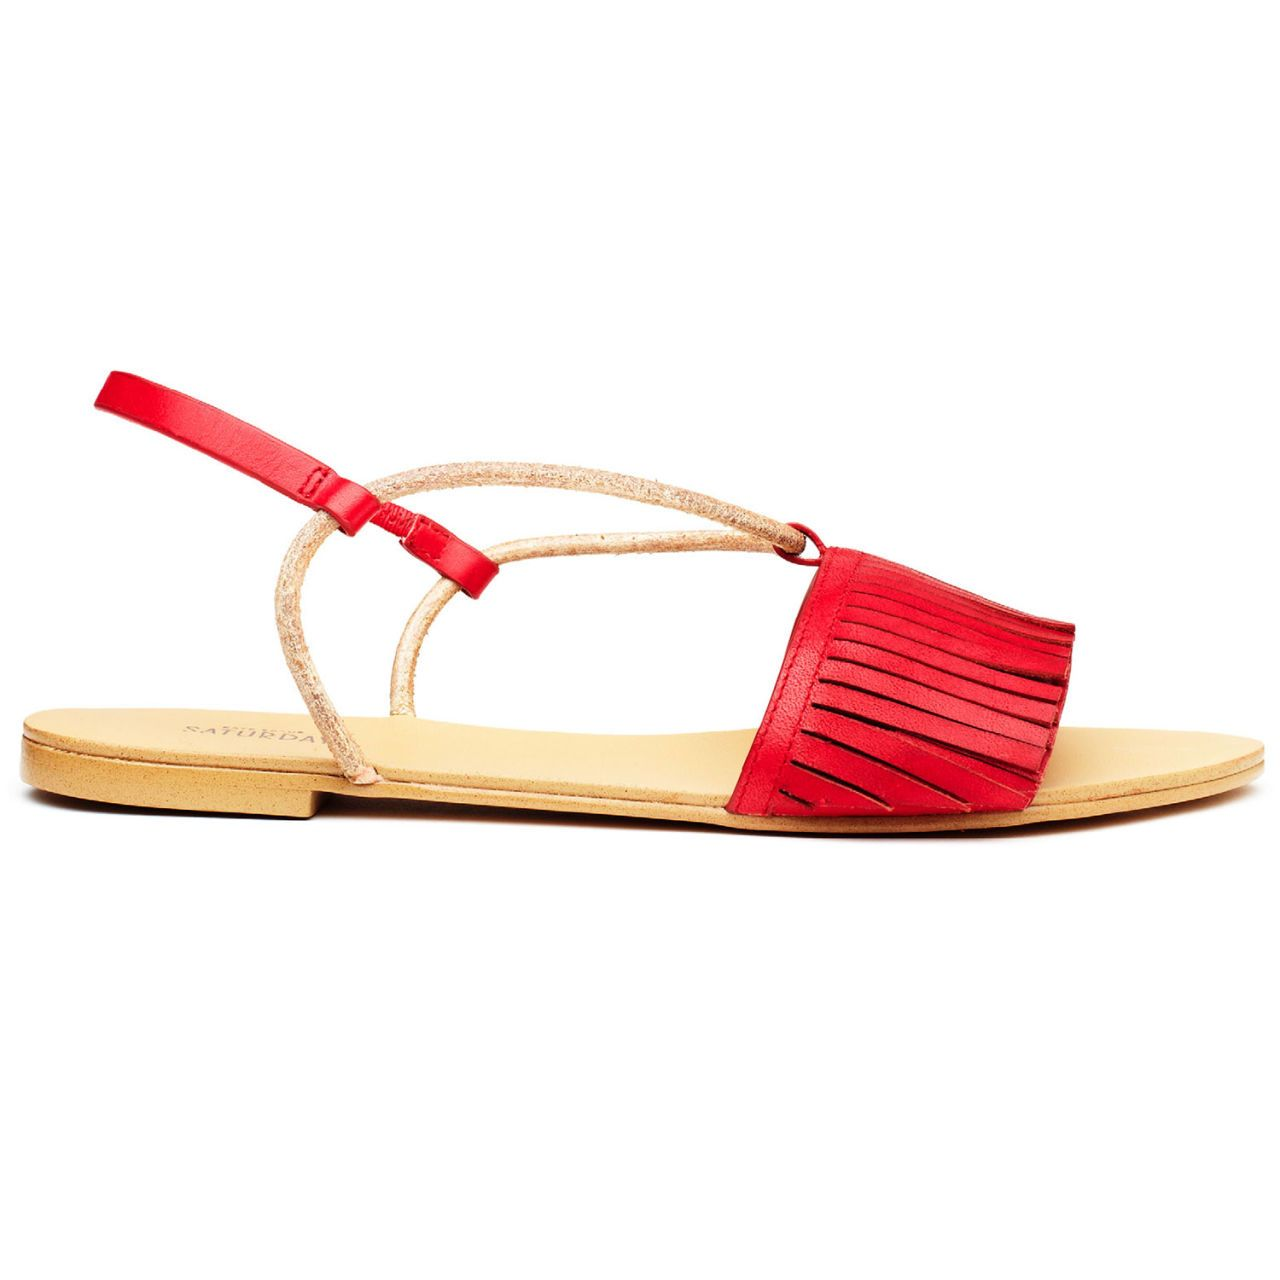 pictures TheLIST: Great Finds: Summer Sandals Edition